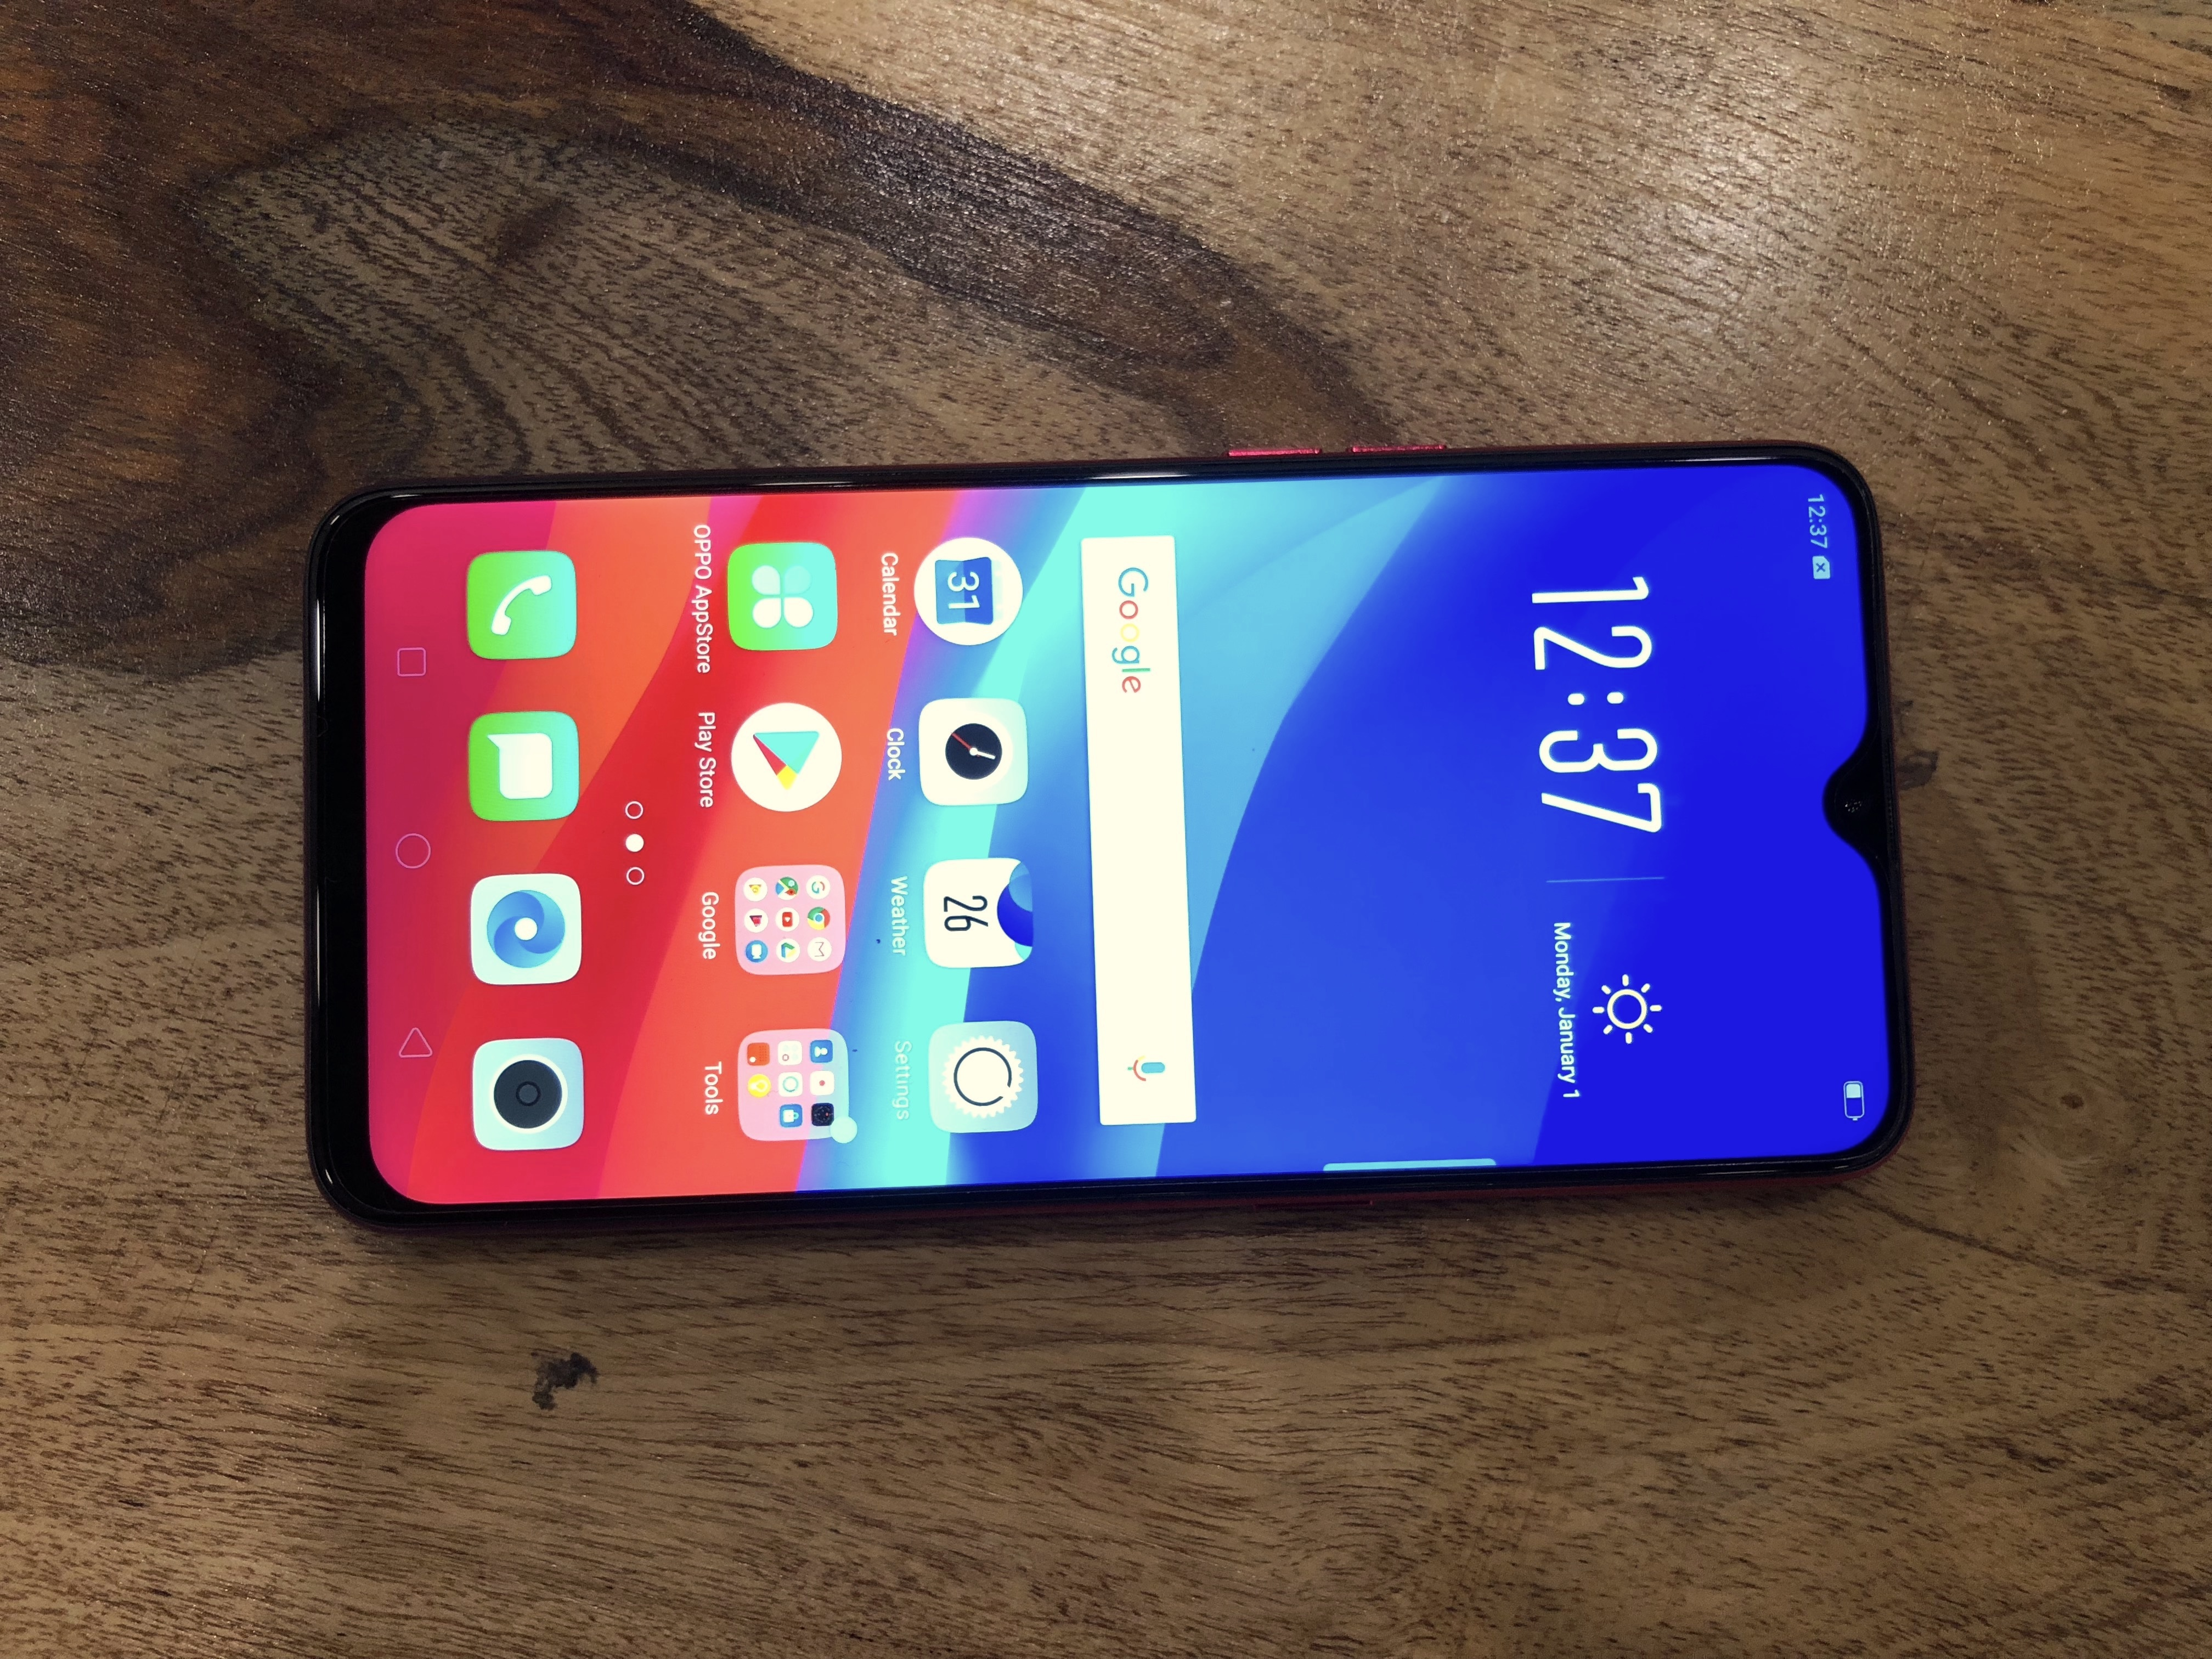 Is the Oppo F9 Pro launched in the UAE water drop design? - Quora